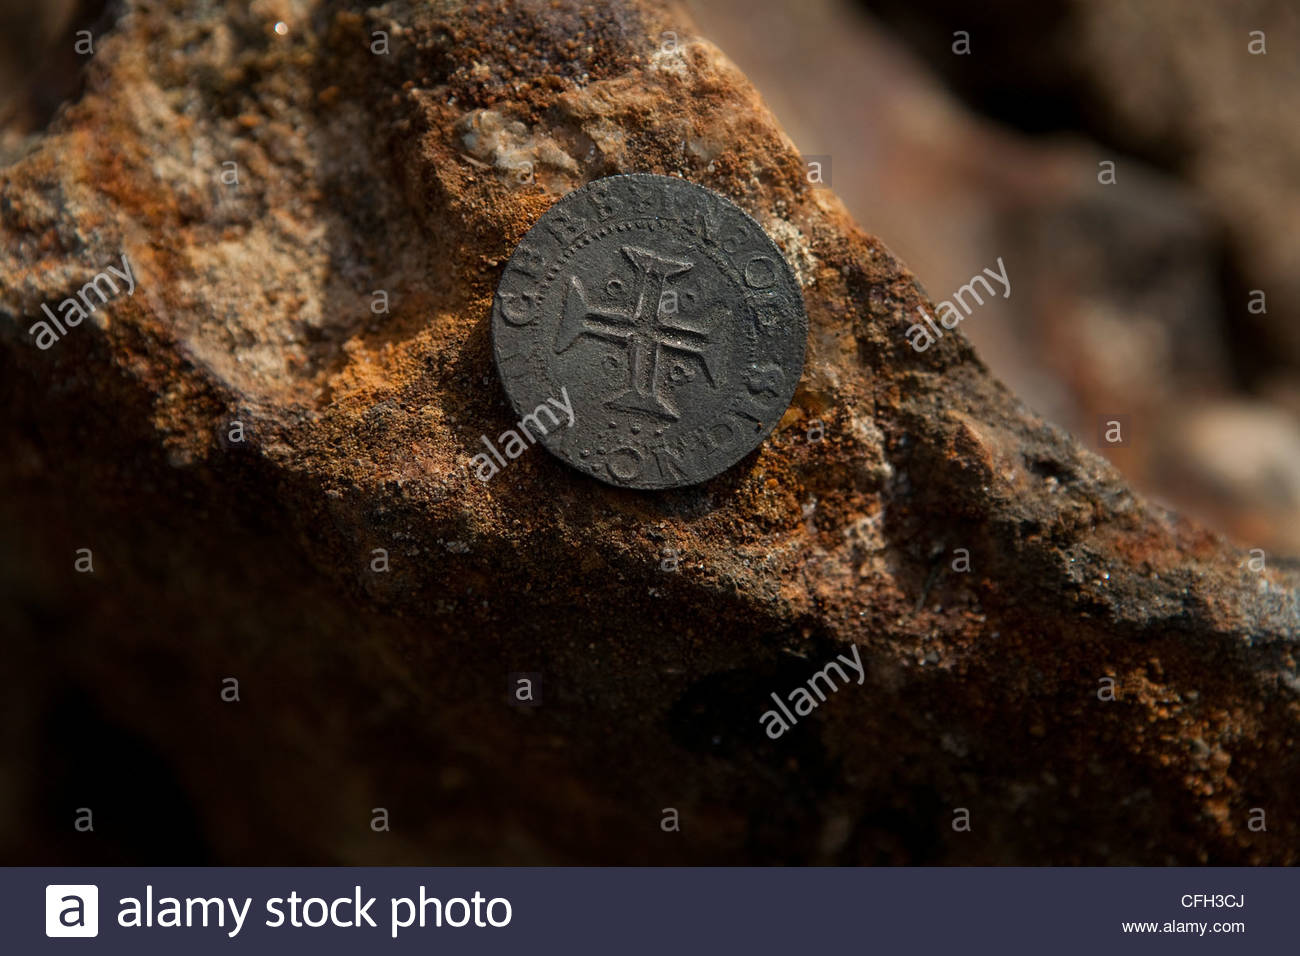 A silver coin excavated at the shipwreck site of a Portuguese trading vessel. - Stock Image